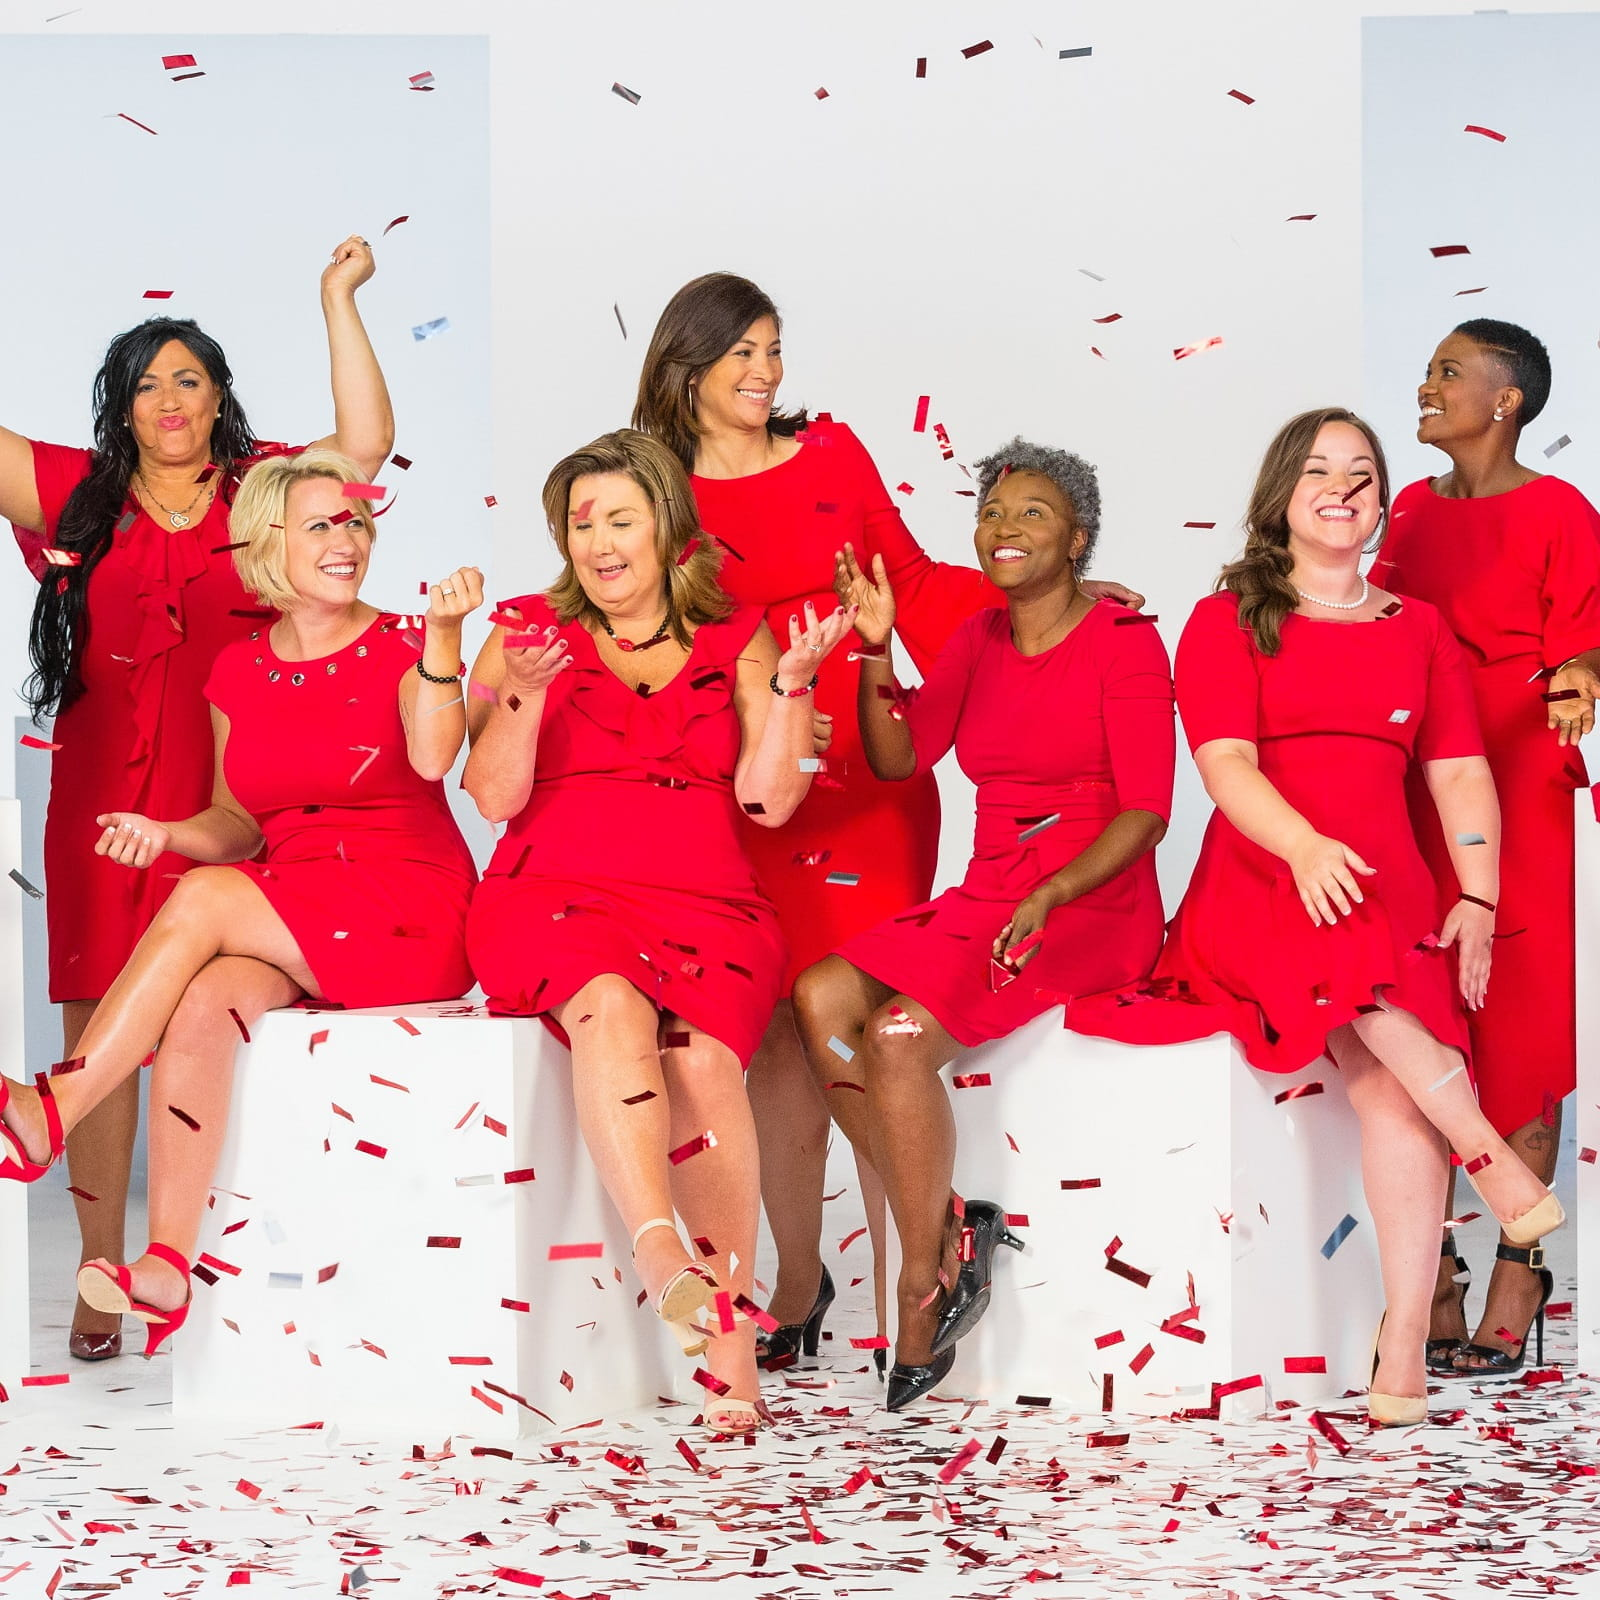 group of women wearing red